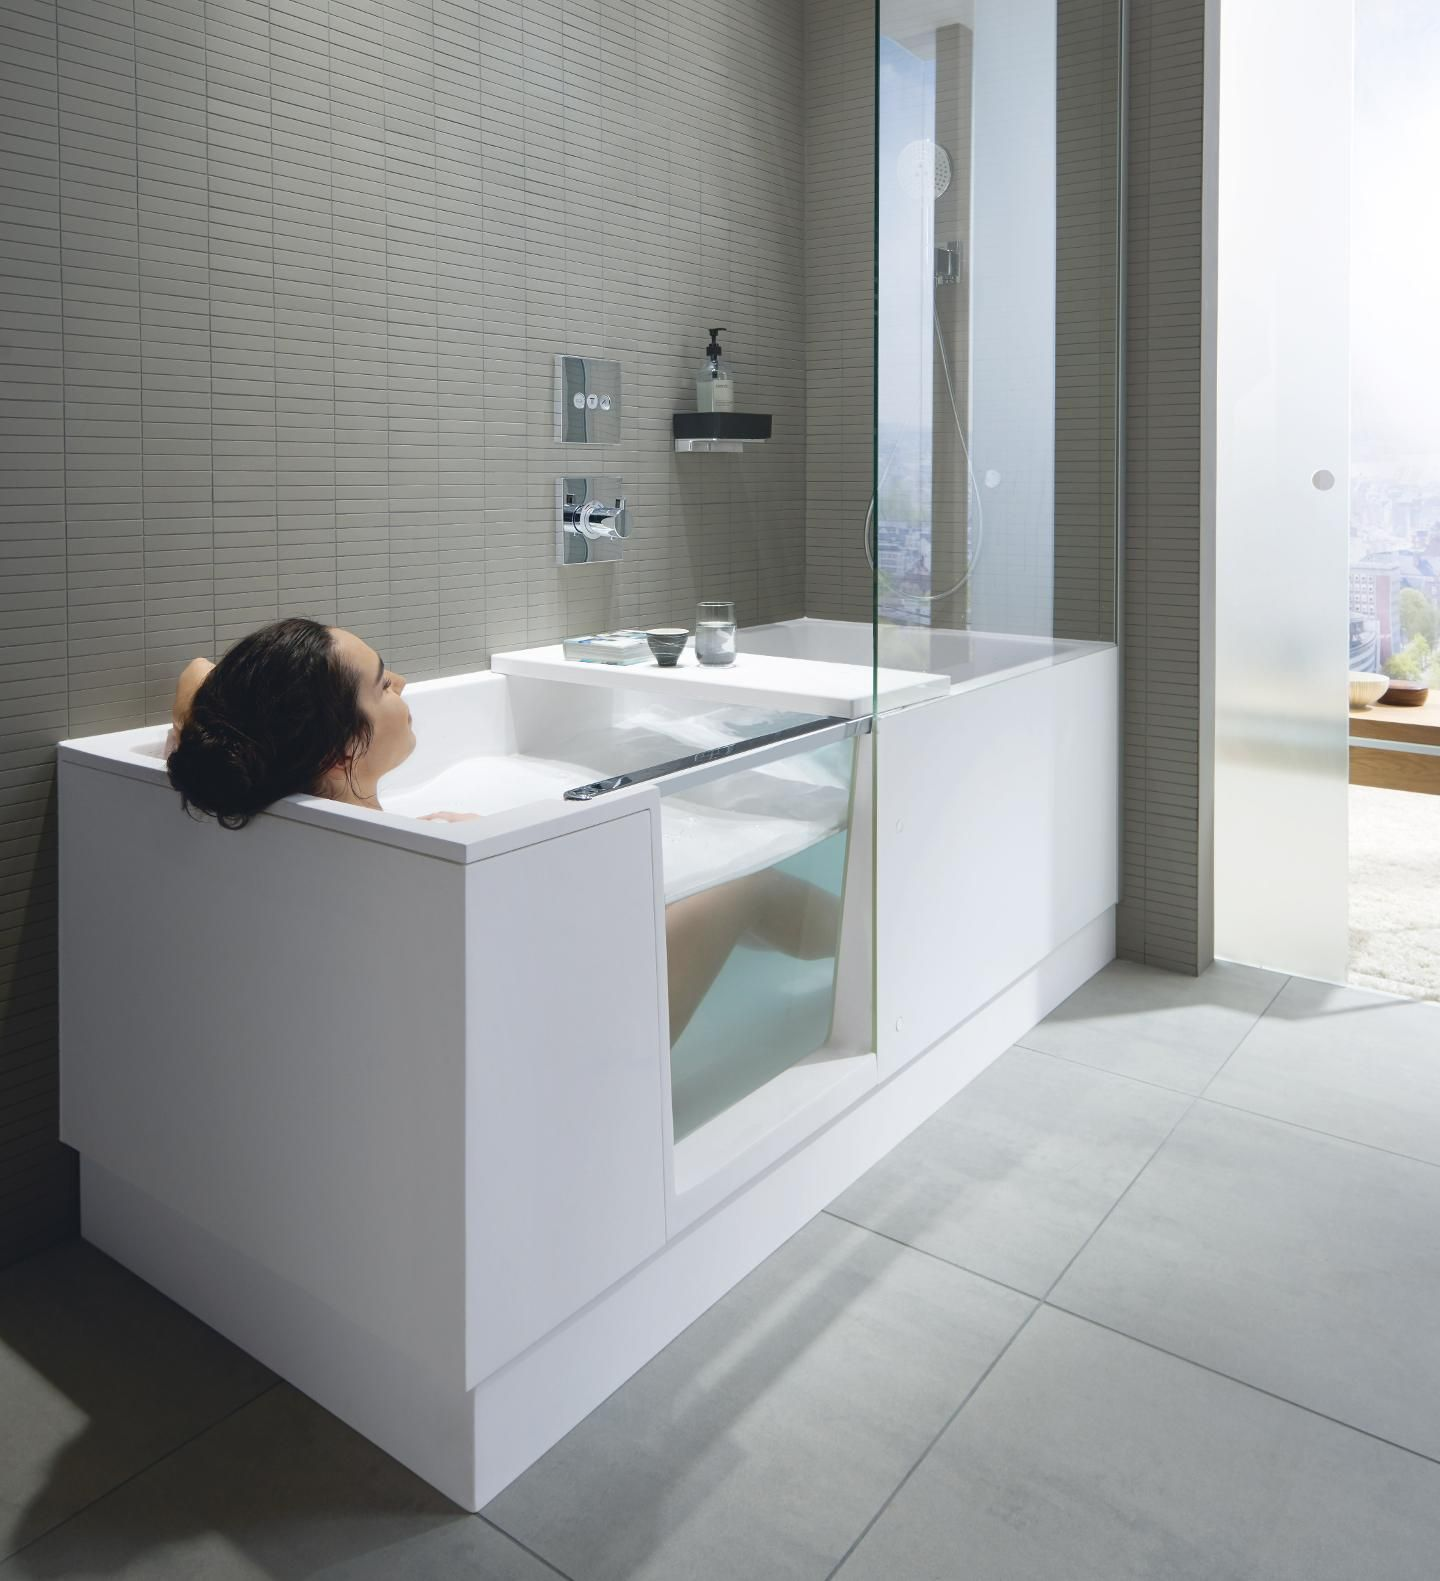 Duravit Doppelwaschtisch 160 Shower Bath Duravit Sa Refurb Ideas In 2019 Bathroom Tub